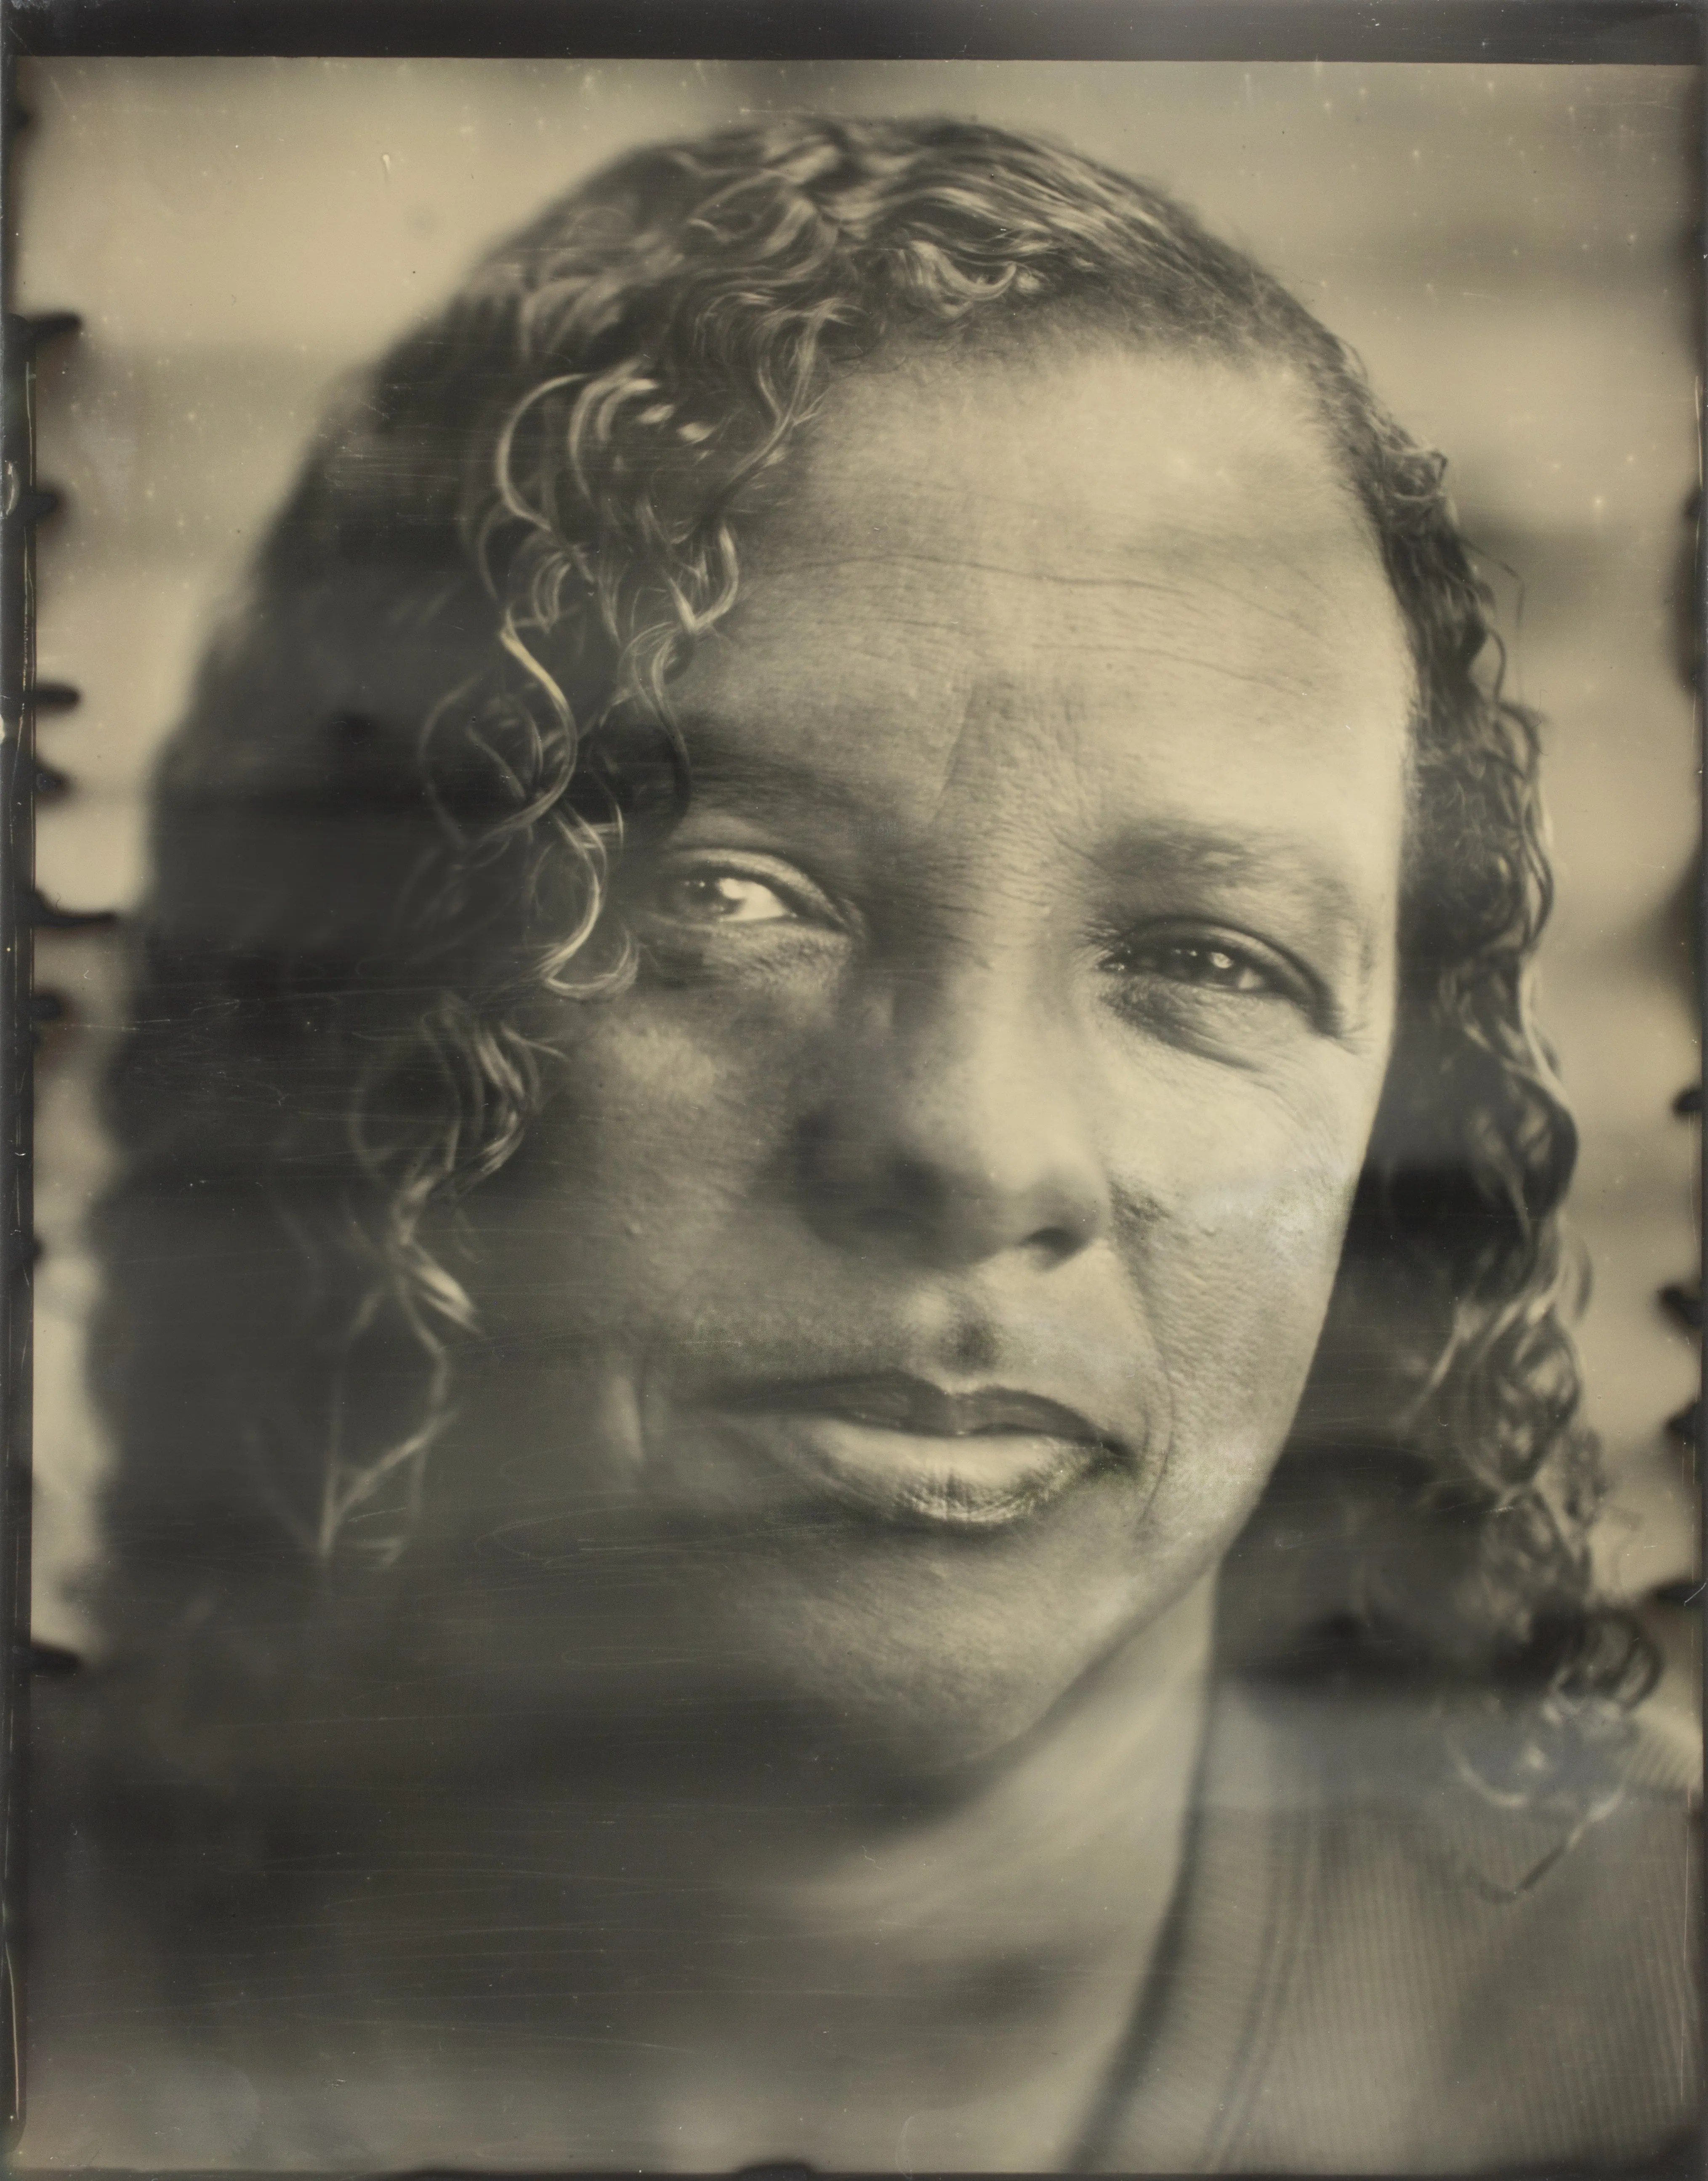 Amber Dudley great-great granddaughter of Lindsey Jackson and great-great grand niece of Polly Jackson, both freed Black conductors on the Underground Railroad.